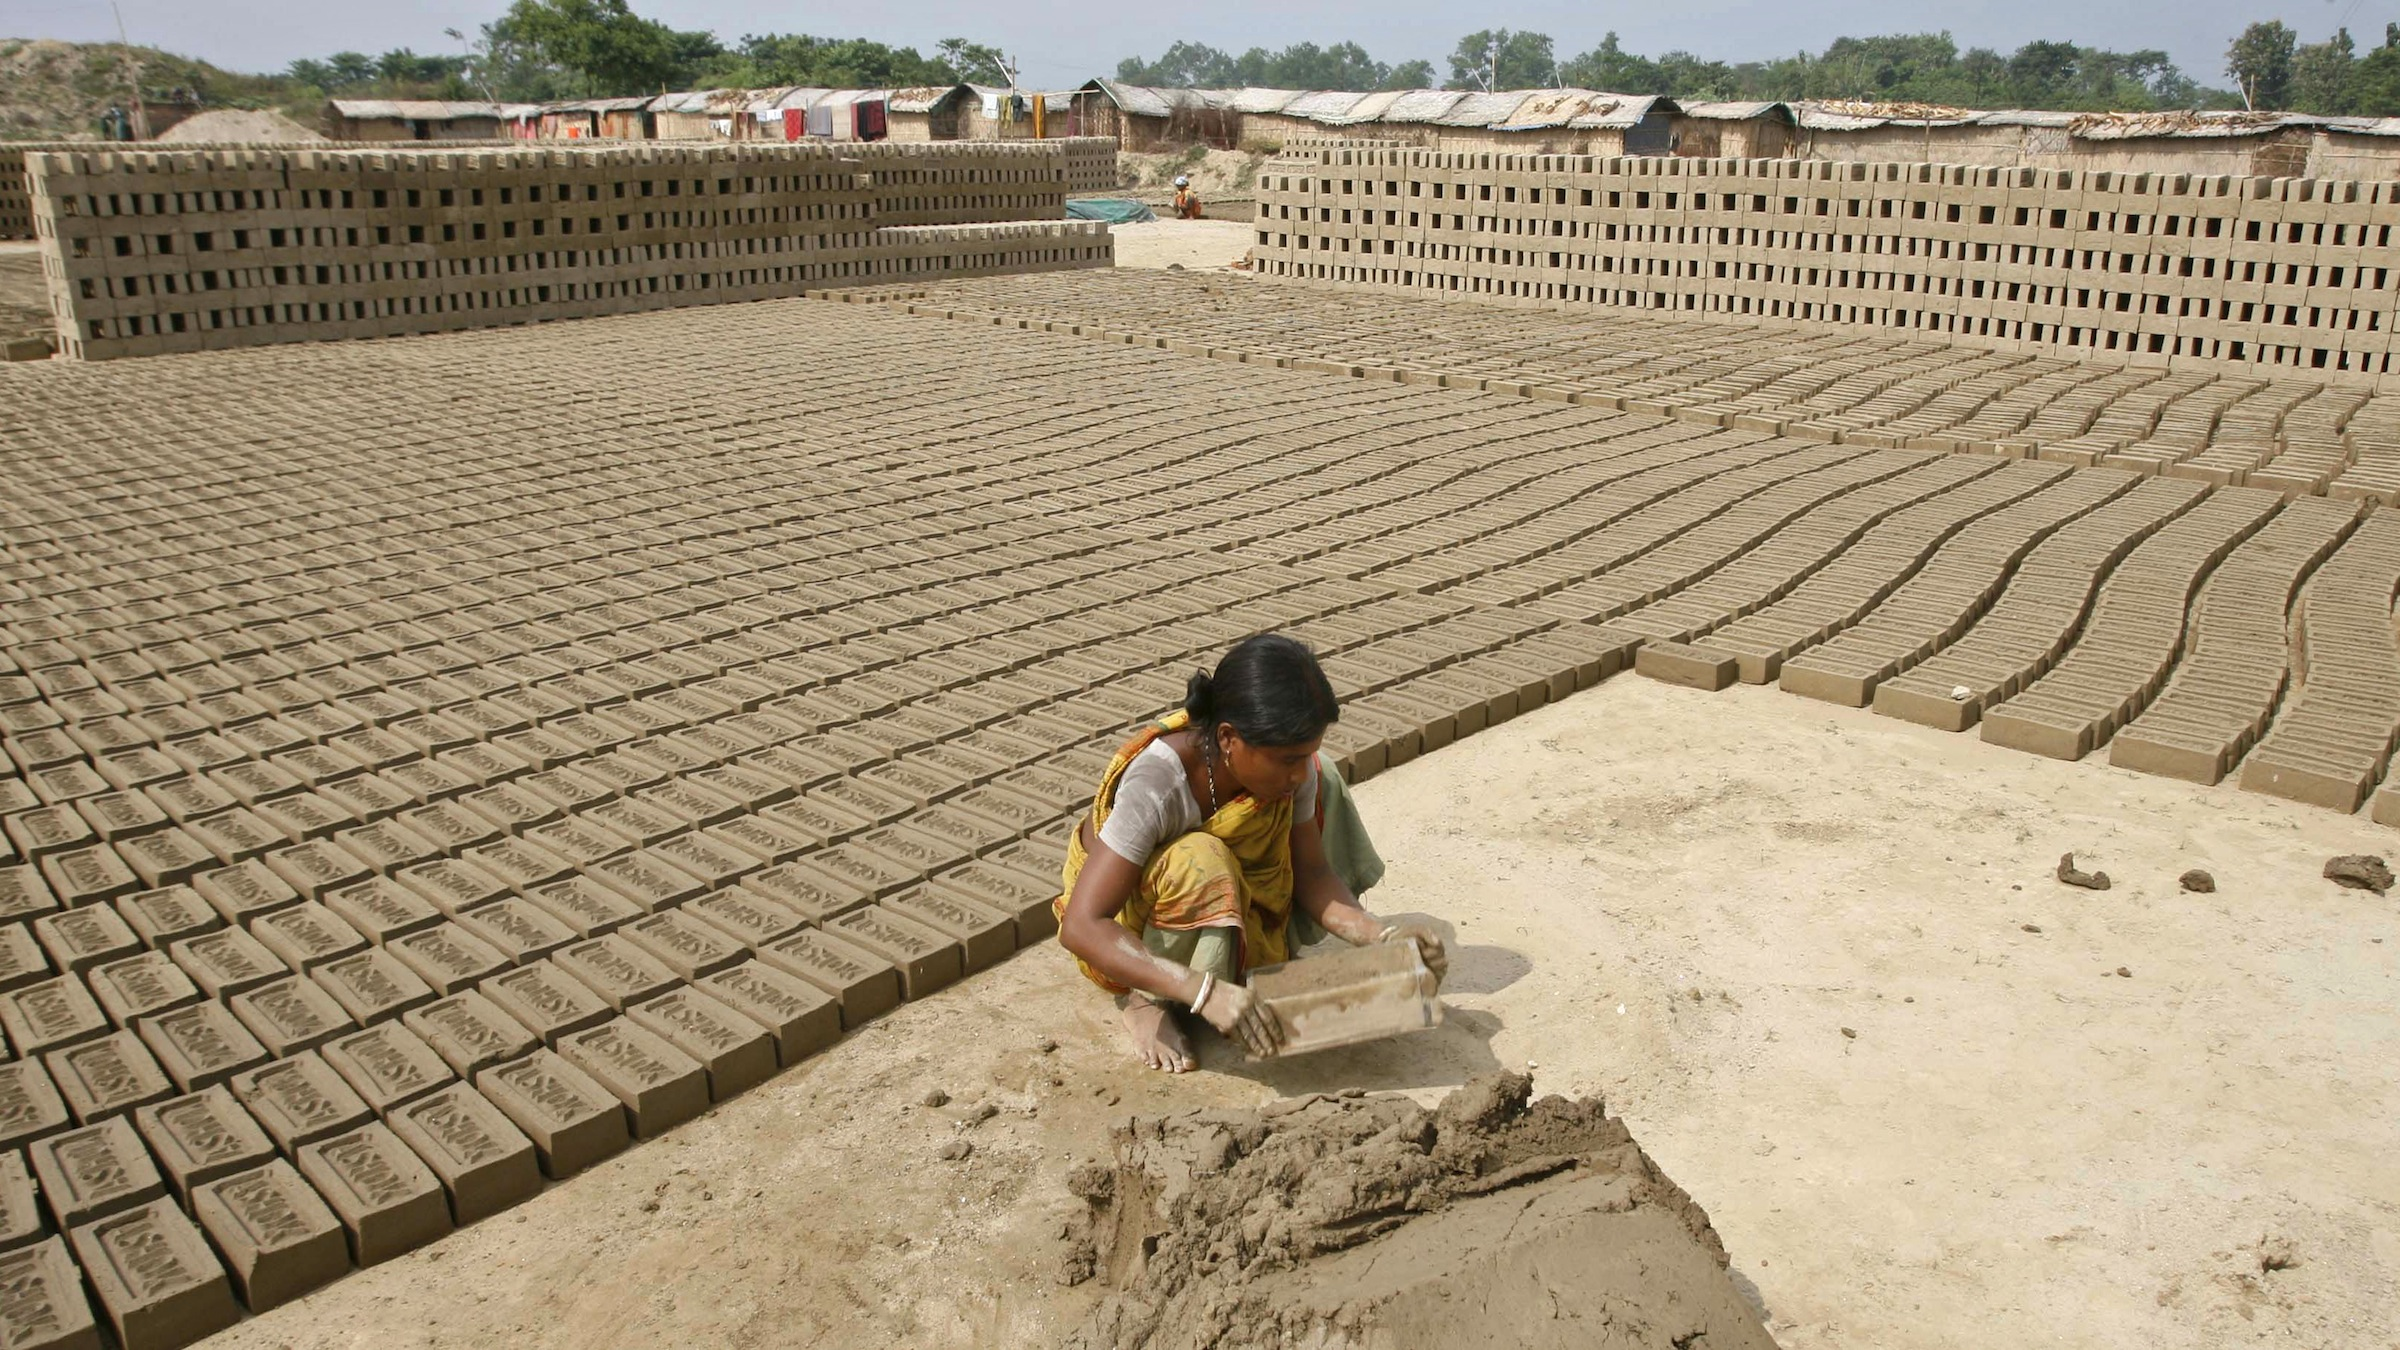 More women in Indian rural areas are joining the workforce.